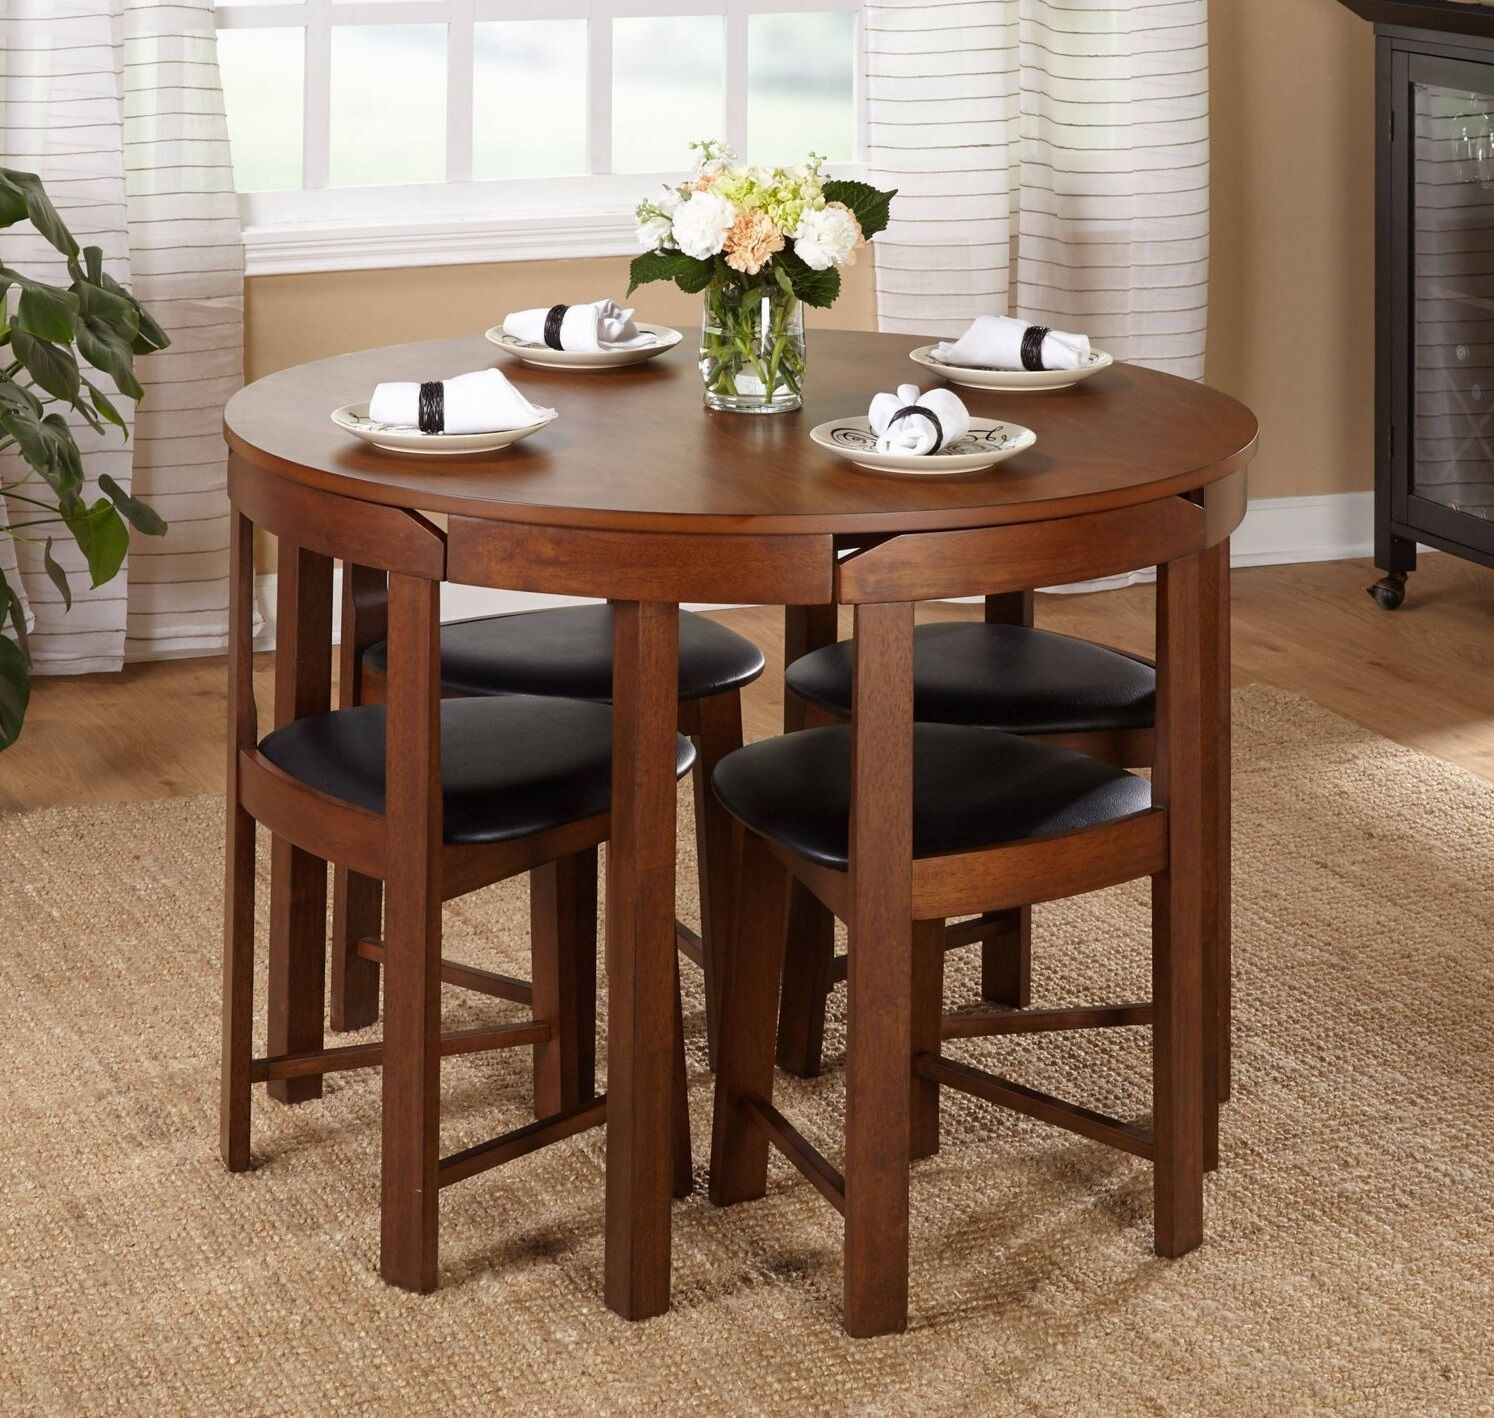 Dining Kitchen Table Sets: Modern 5pc Dining Table Set Kitchen Dinette Chairs